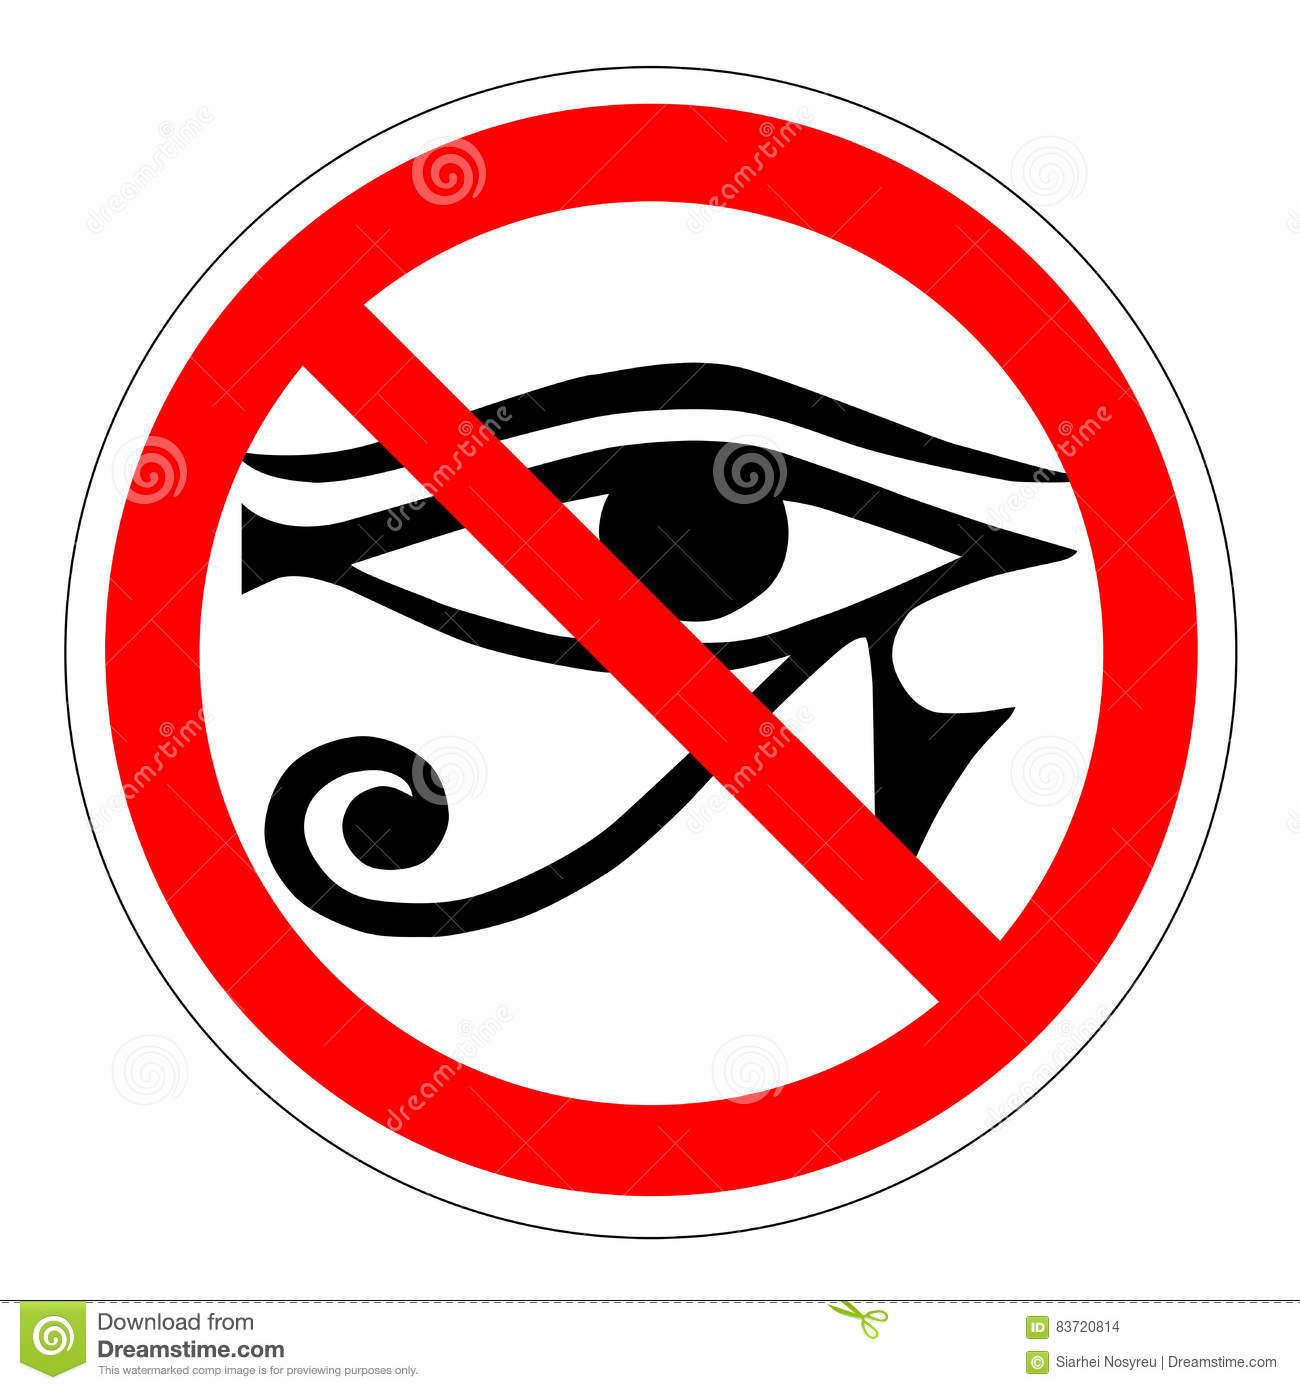 The All Seeing Eye Of The Ban The New World Order Forbidden Sign